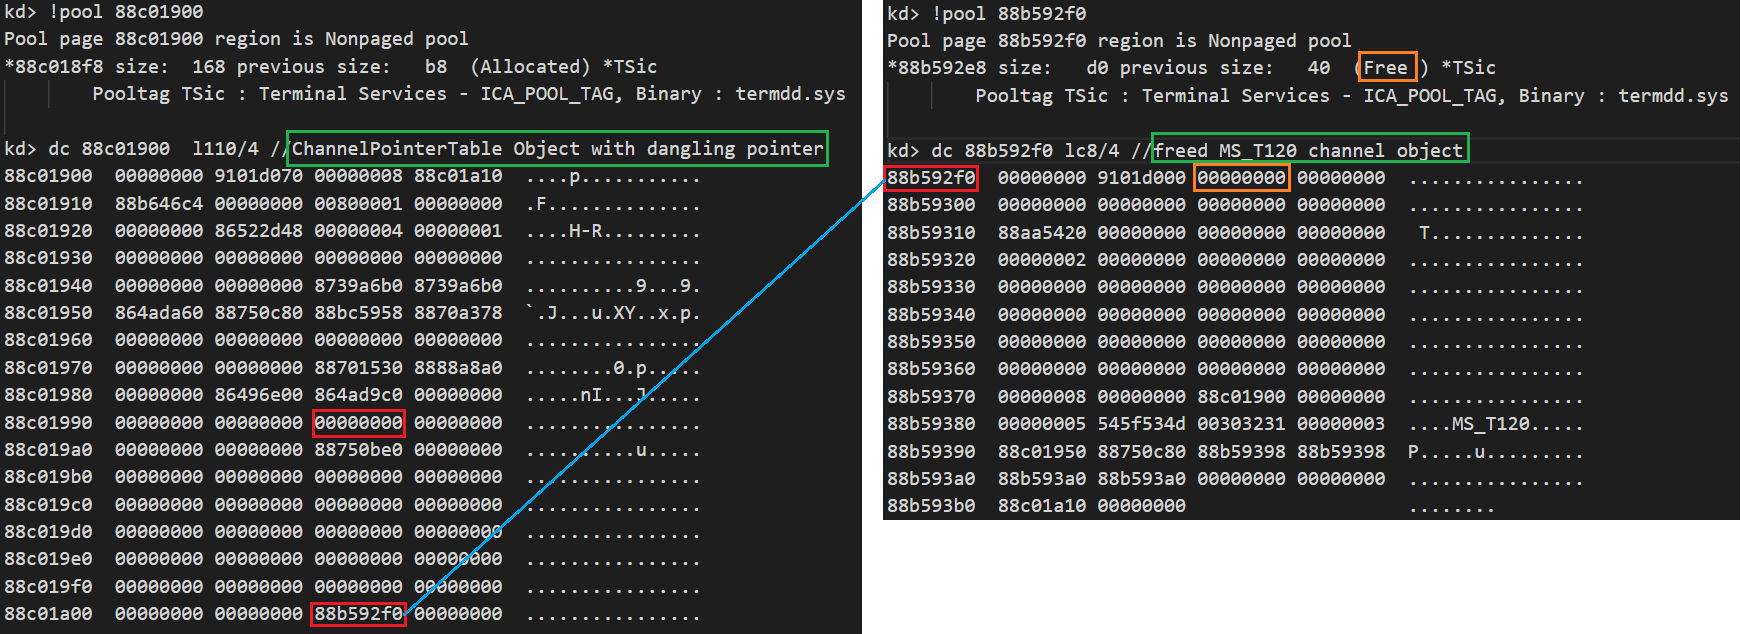 After the MS_T120 channel object is freed, there is still one dangling pointer left pointing to the freed MS_T120 channel object in the slot 0x1f of the ChannelPointerTable object.